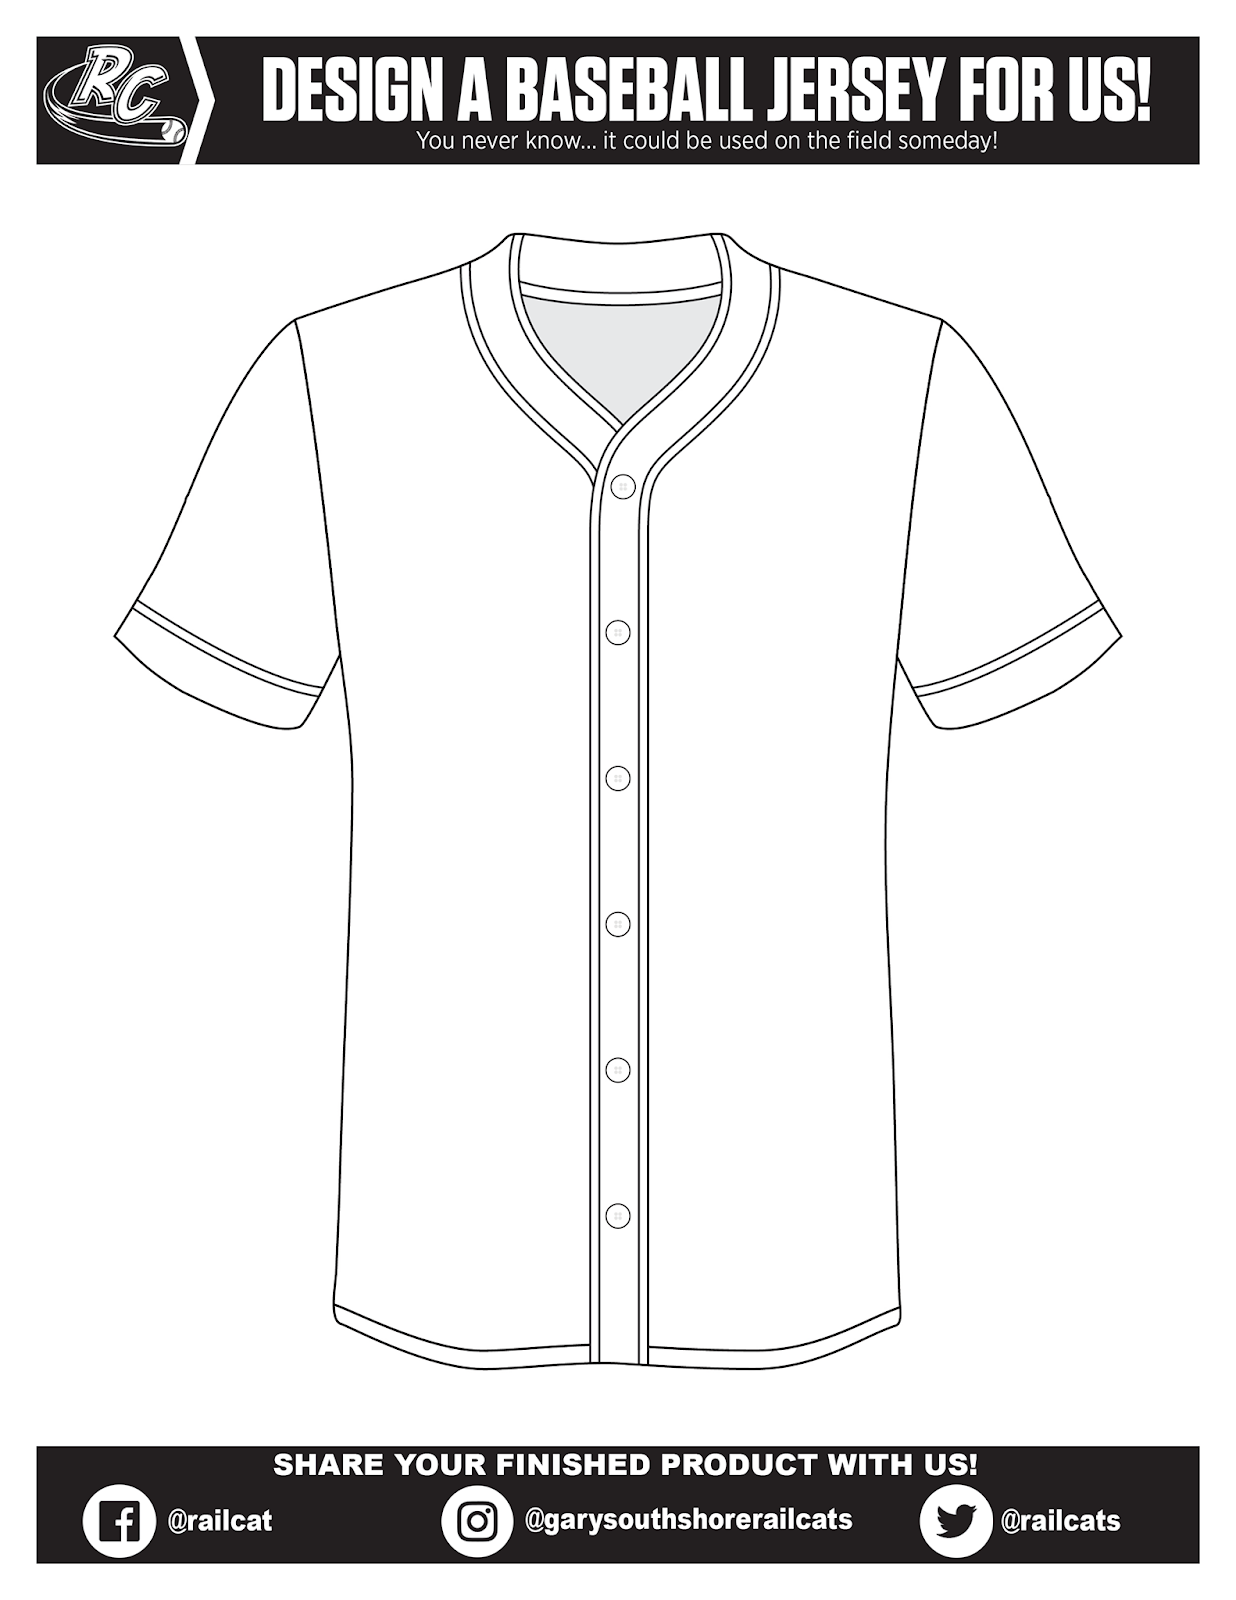 Design a baseball jersey for the Gary Southshore Railcats